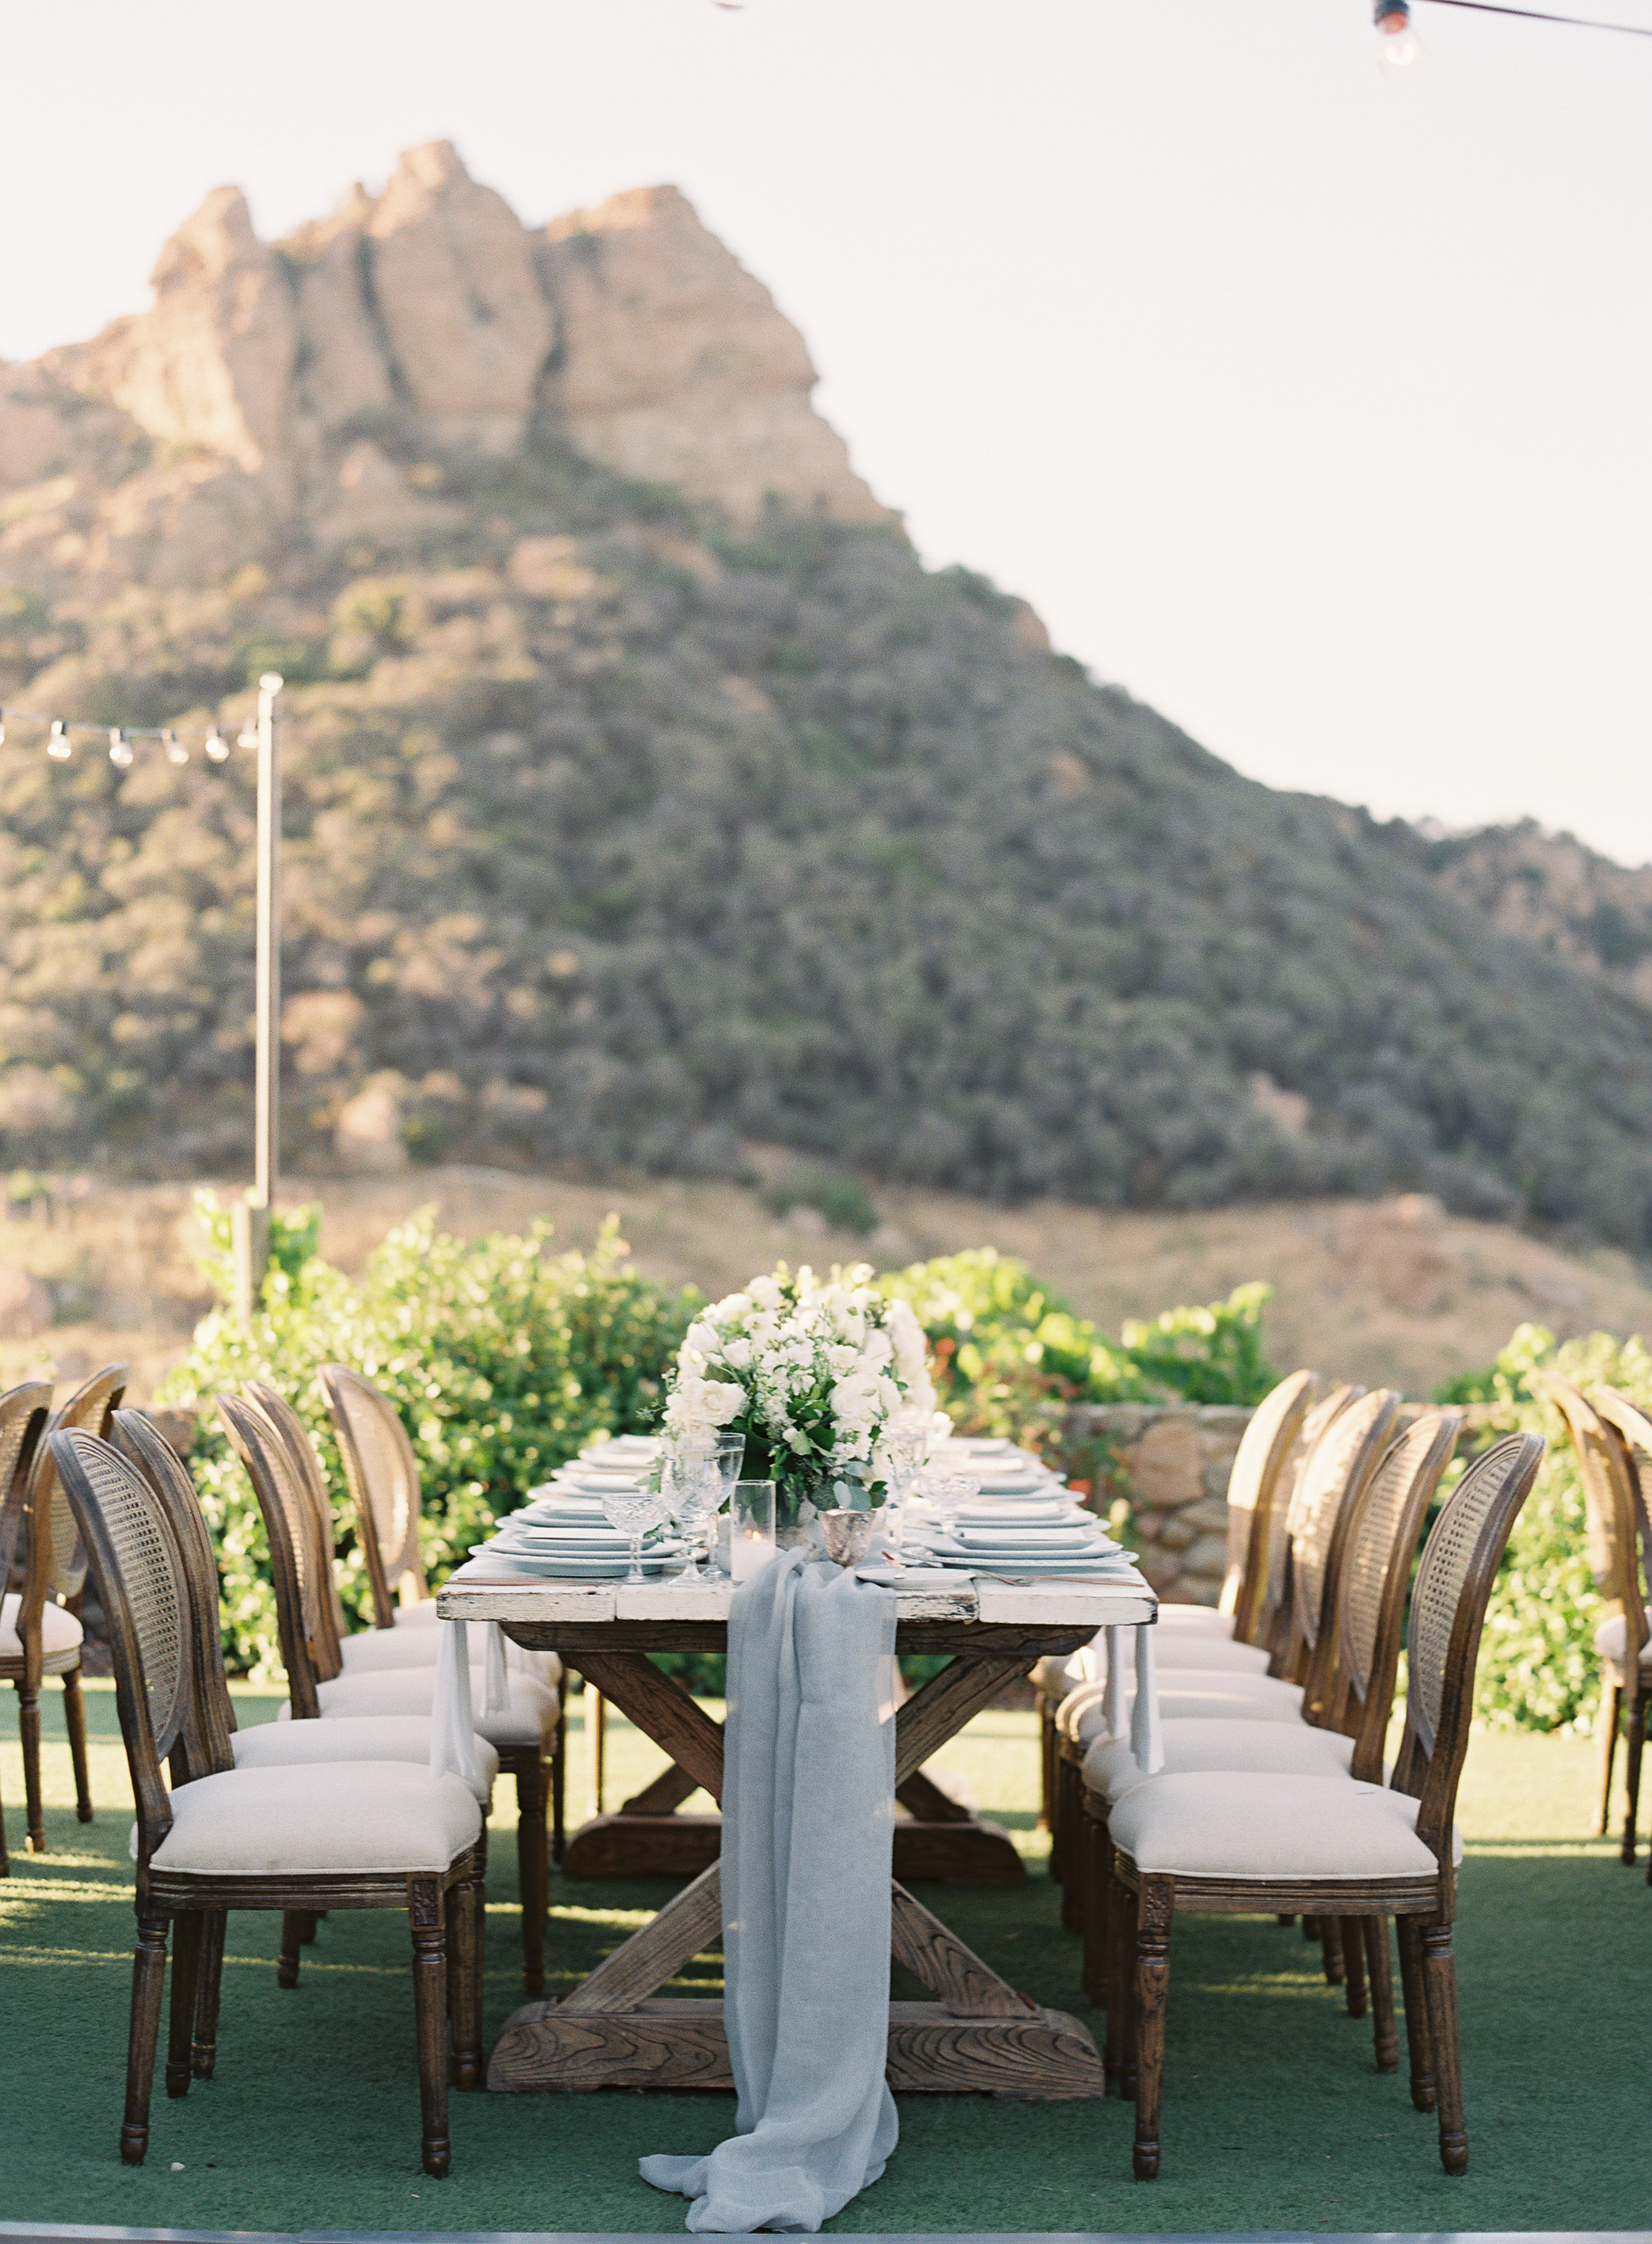 Farm style table setting with mountain int he background